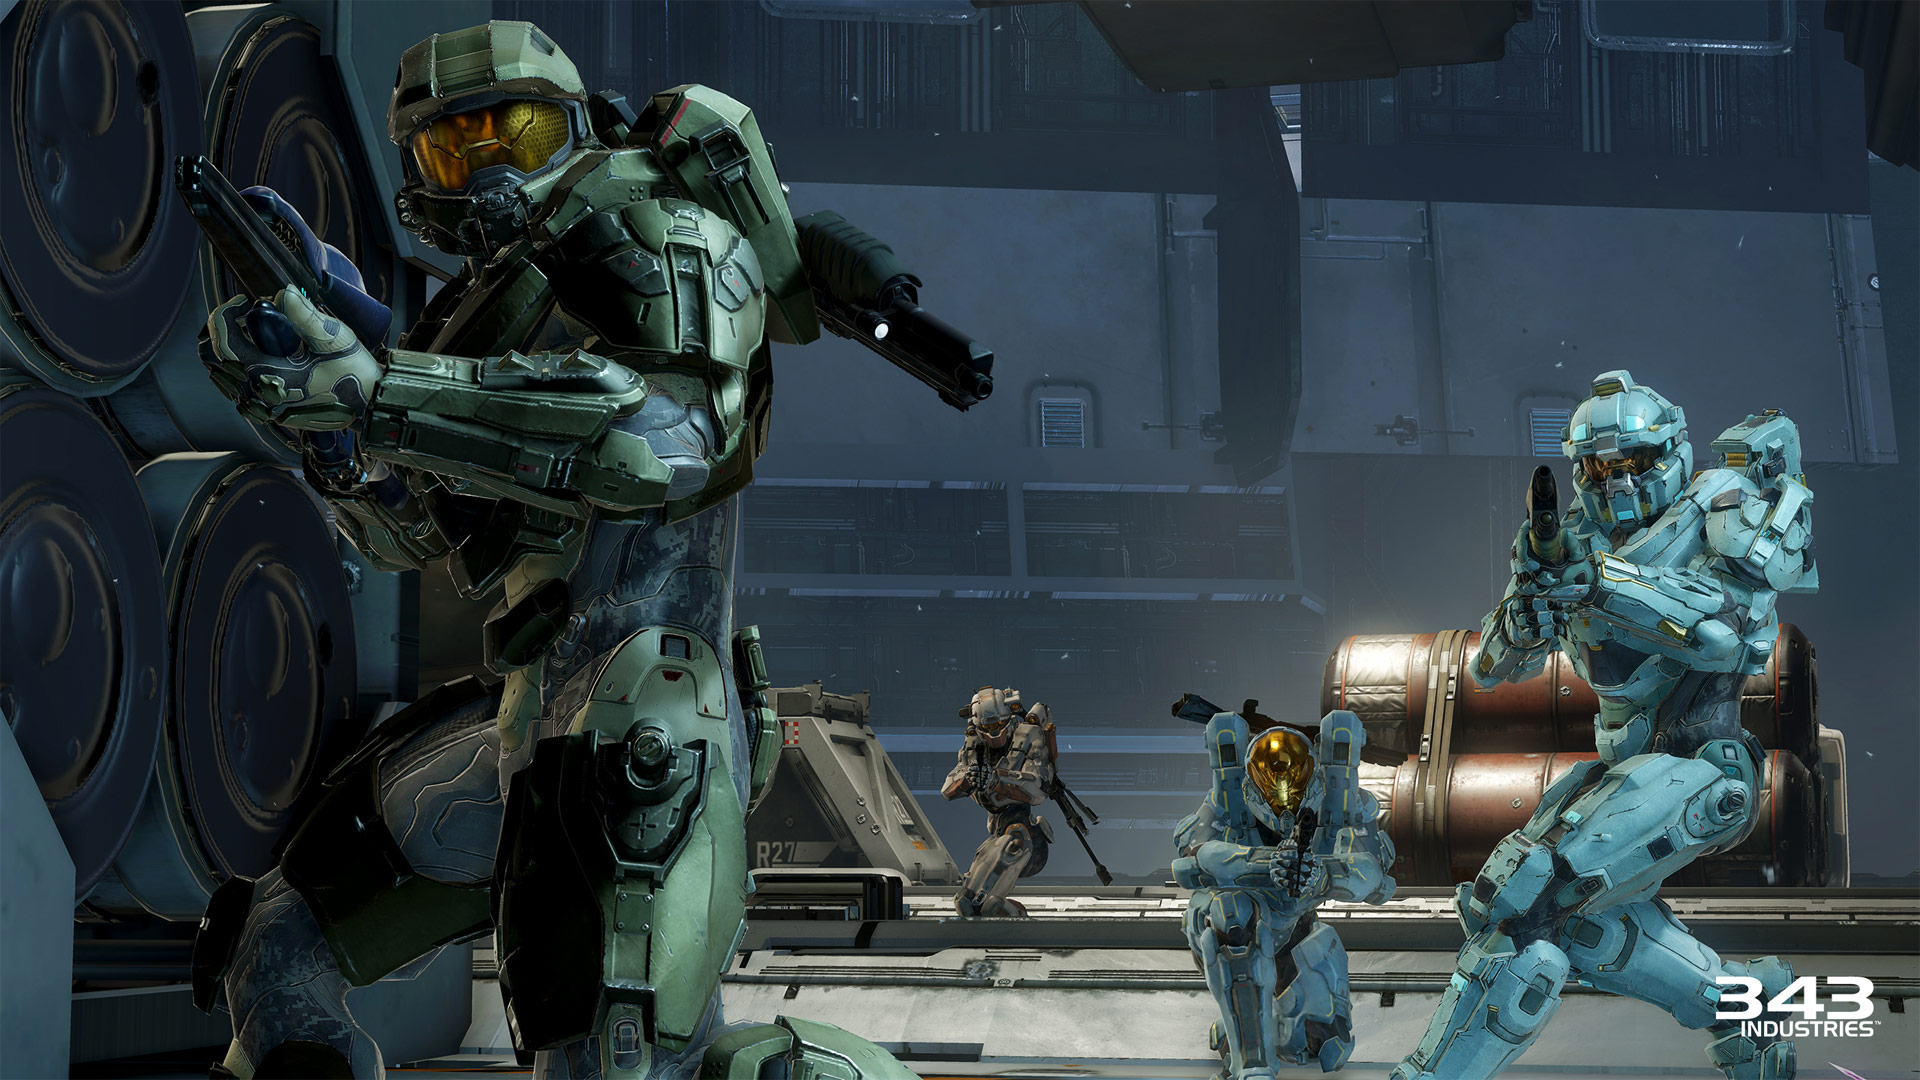 Halo developer offers hope that Halo 5: Guardians could come to PC